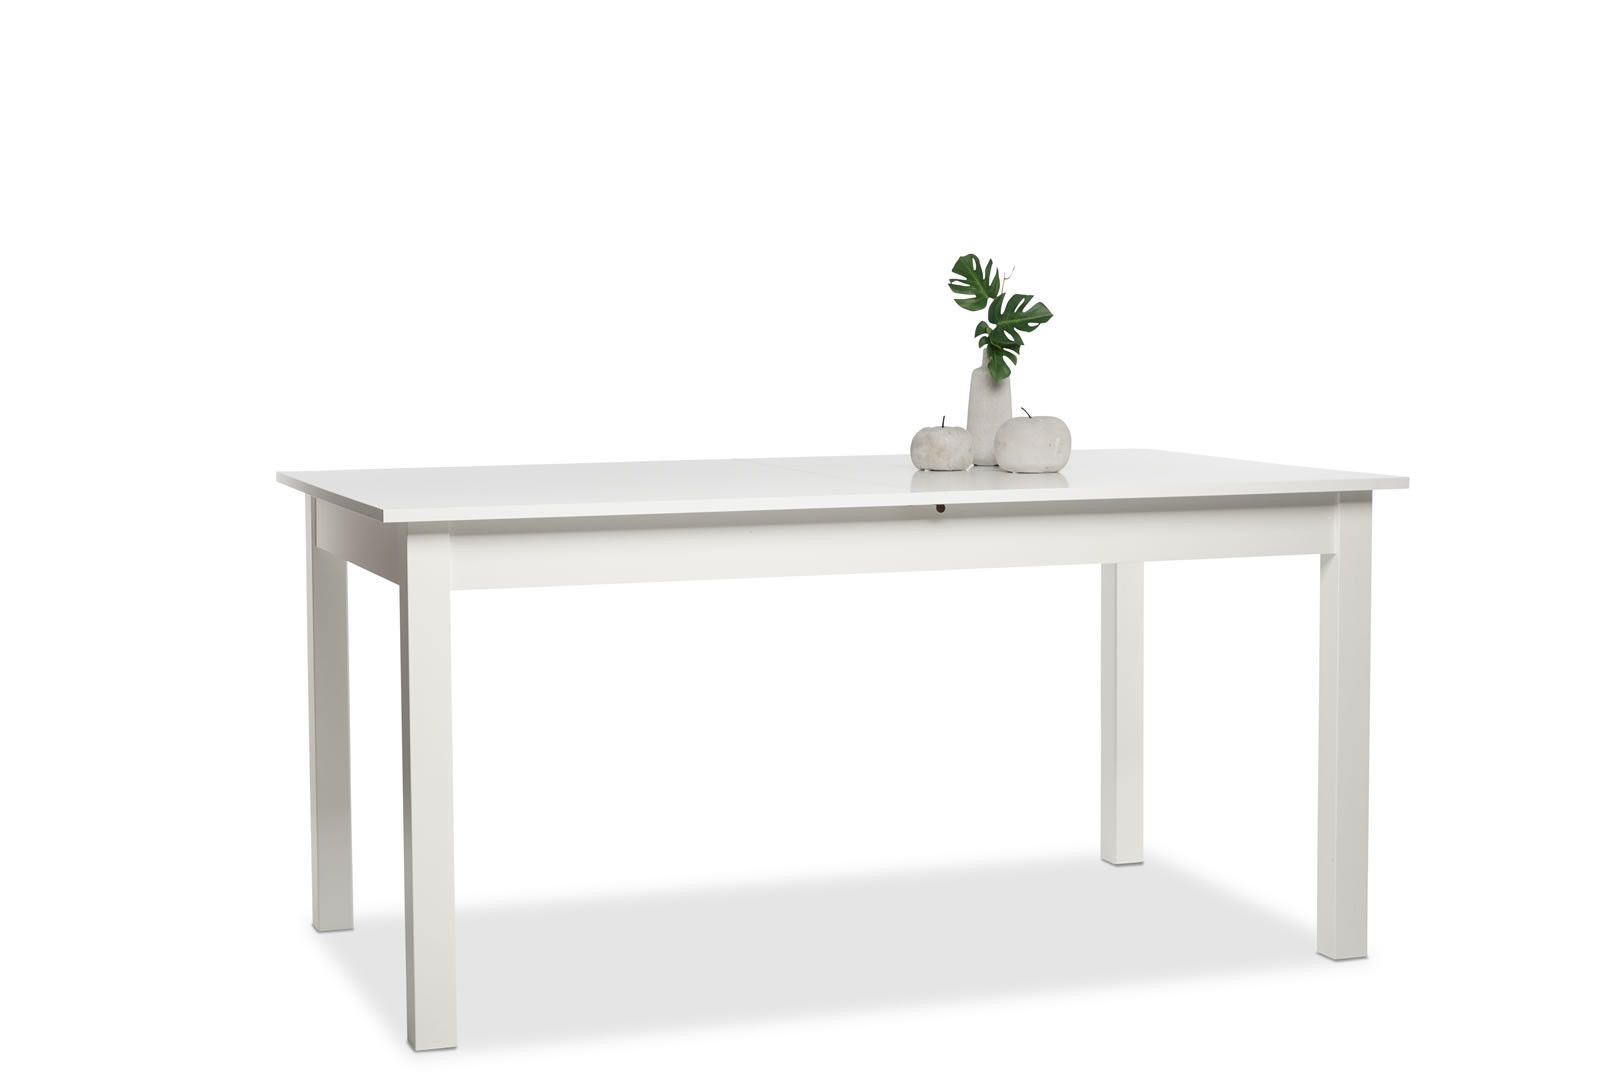 Table manger avec allonges 160 200 cm jiminy blanc for Table a manger 160 cm avec rallonge